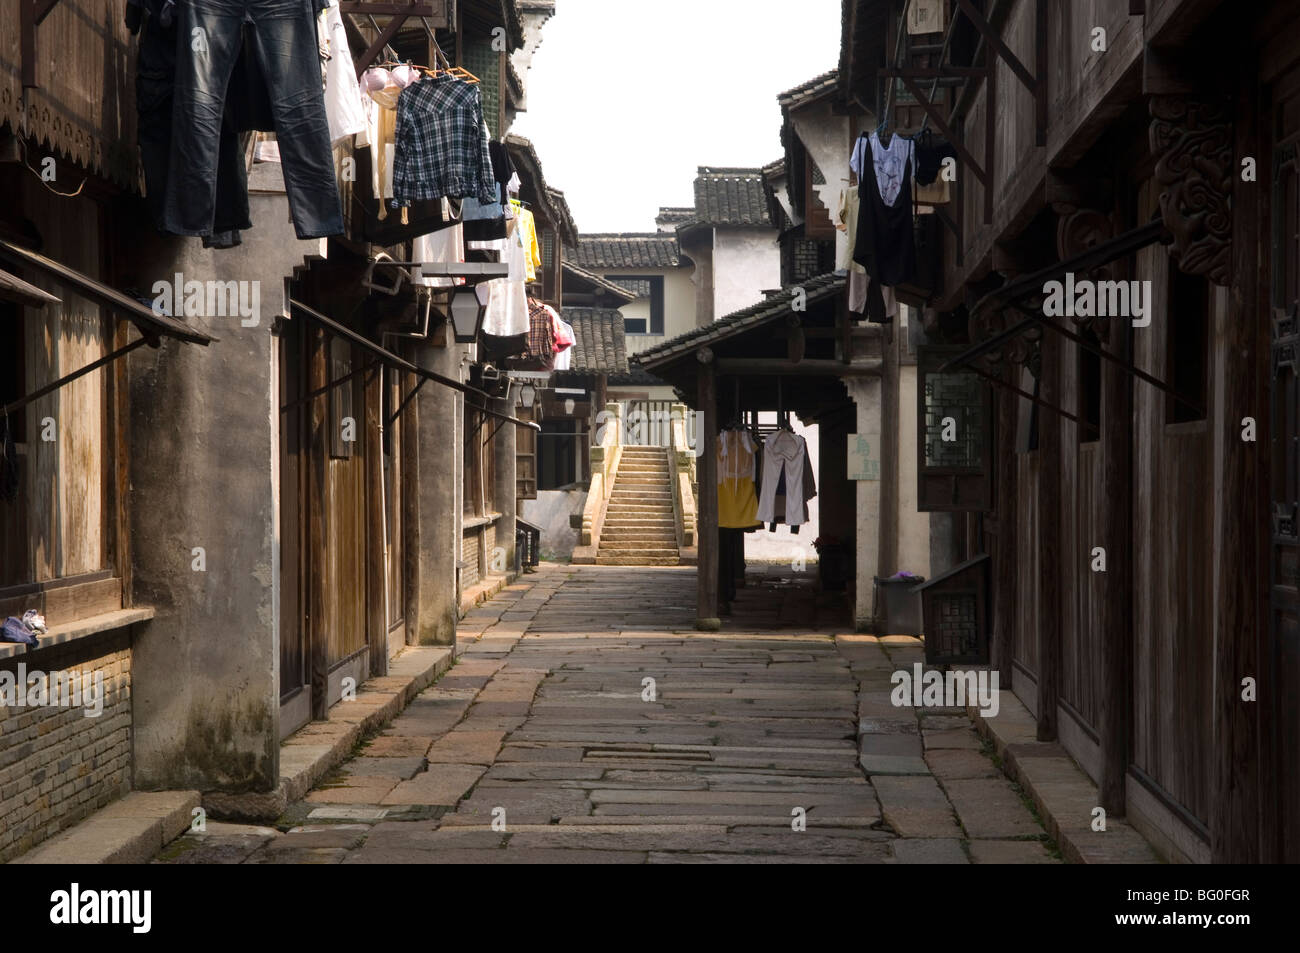 View of a sreet in the picturesque water town Wuzhen.  Zhejiang province, China. - Stock Image